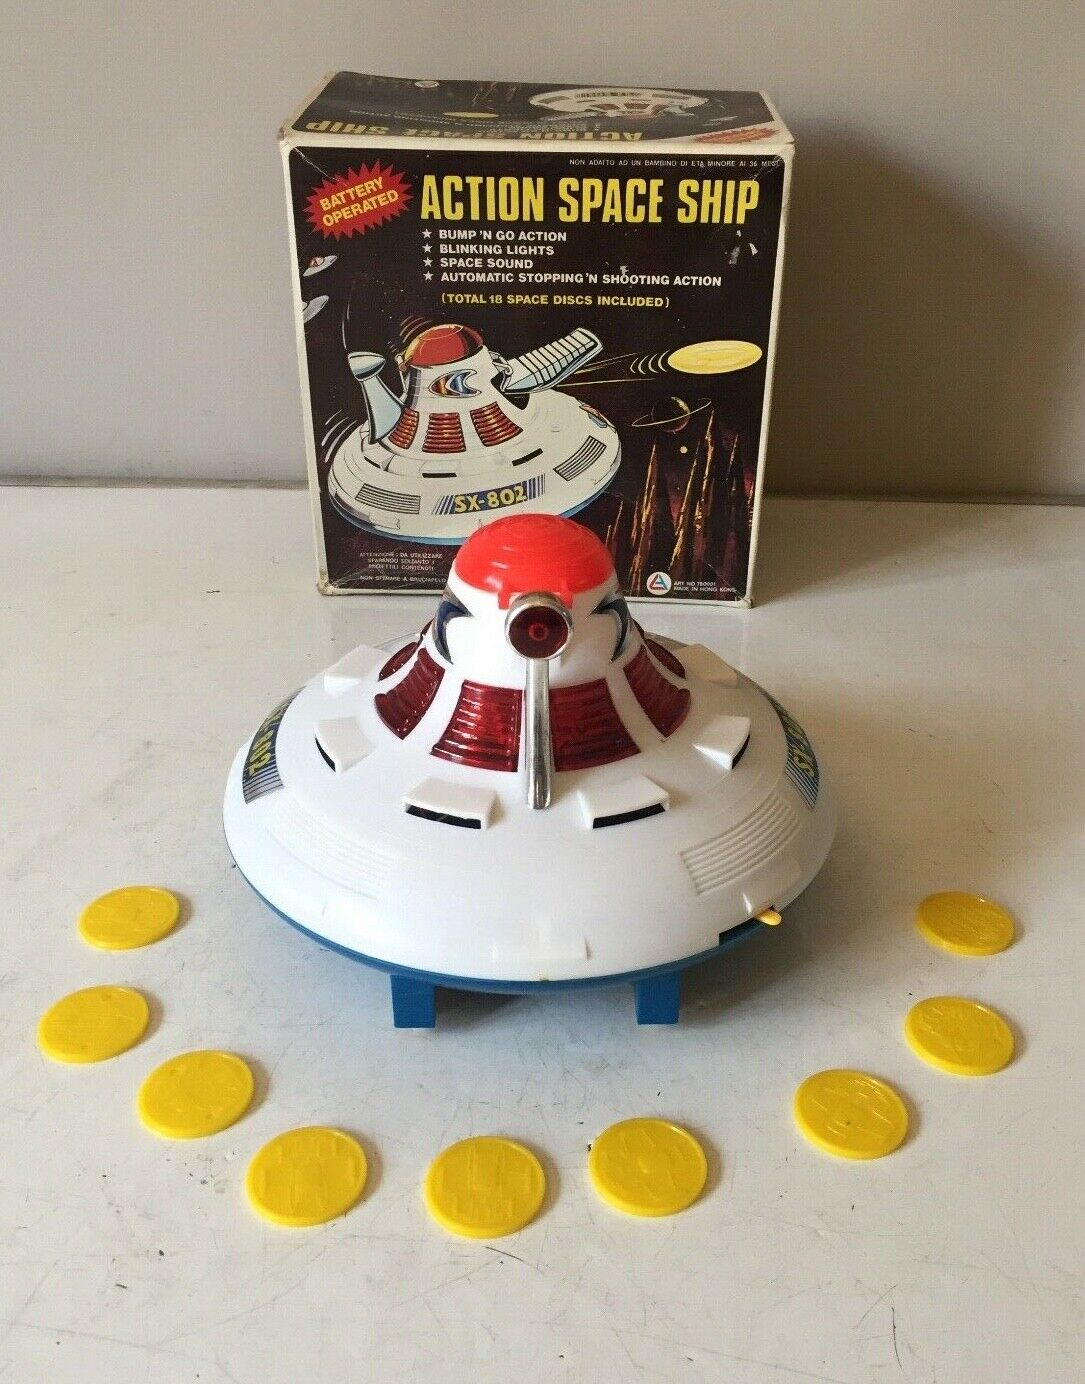 SOMA BATTERY OPERATED ACTION SPACE SHIP  BUMP N N N GO  SHOOTING SPACE DISCS BOXED 403